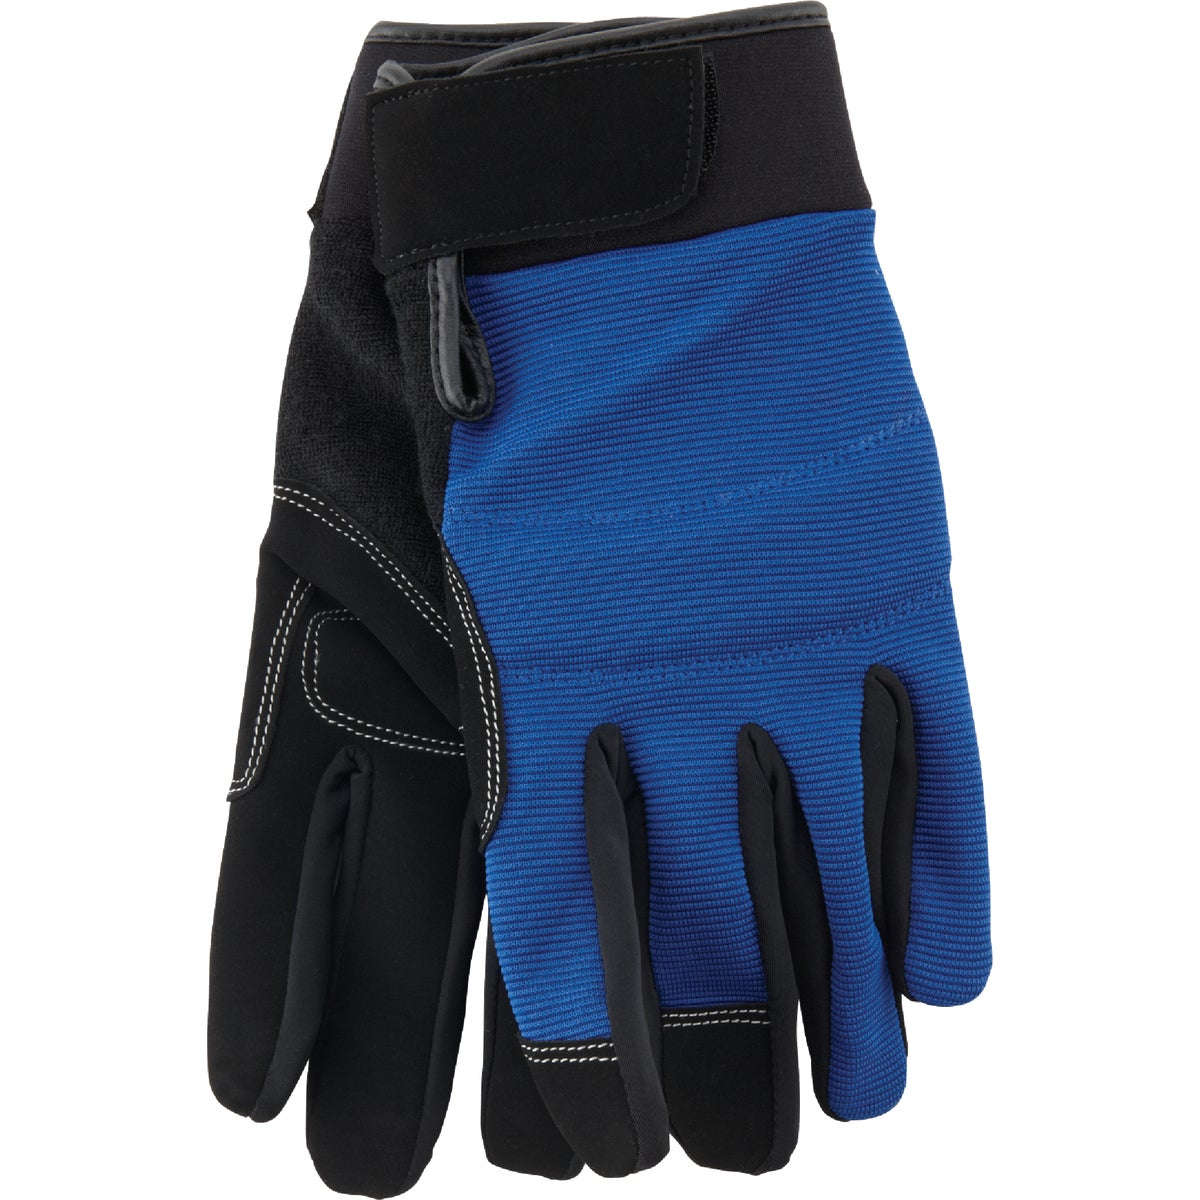 LRG HOOK/LOOP A/P GLOVE - 706475 by Do it Best